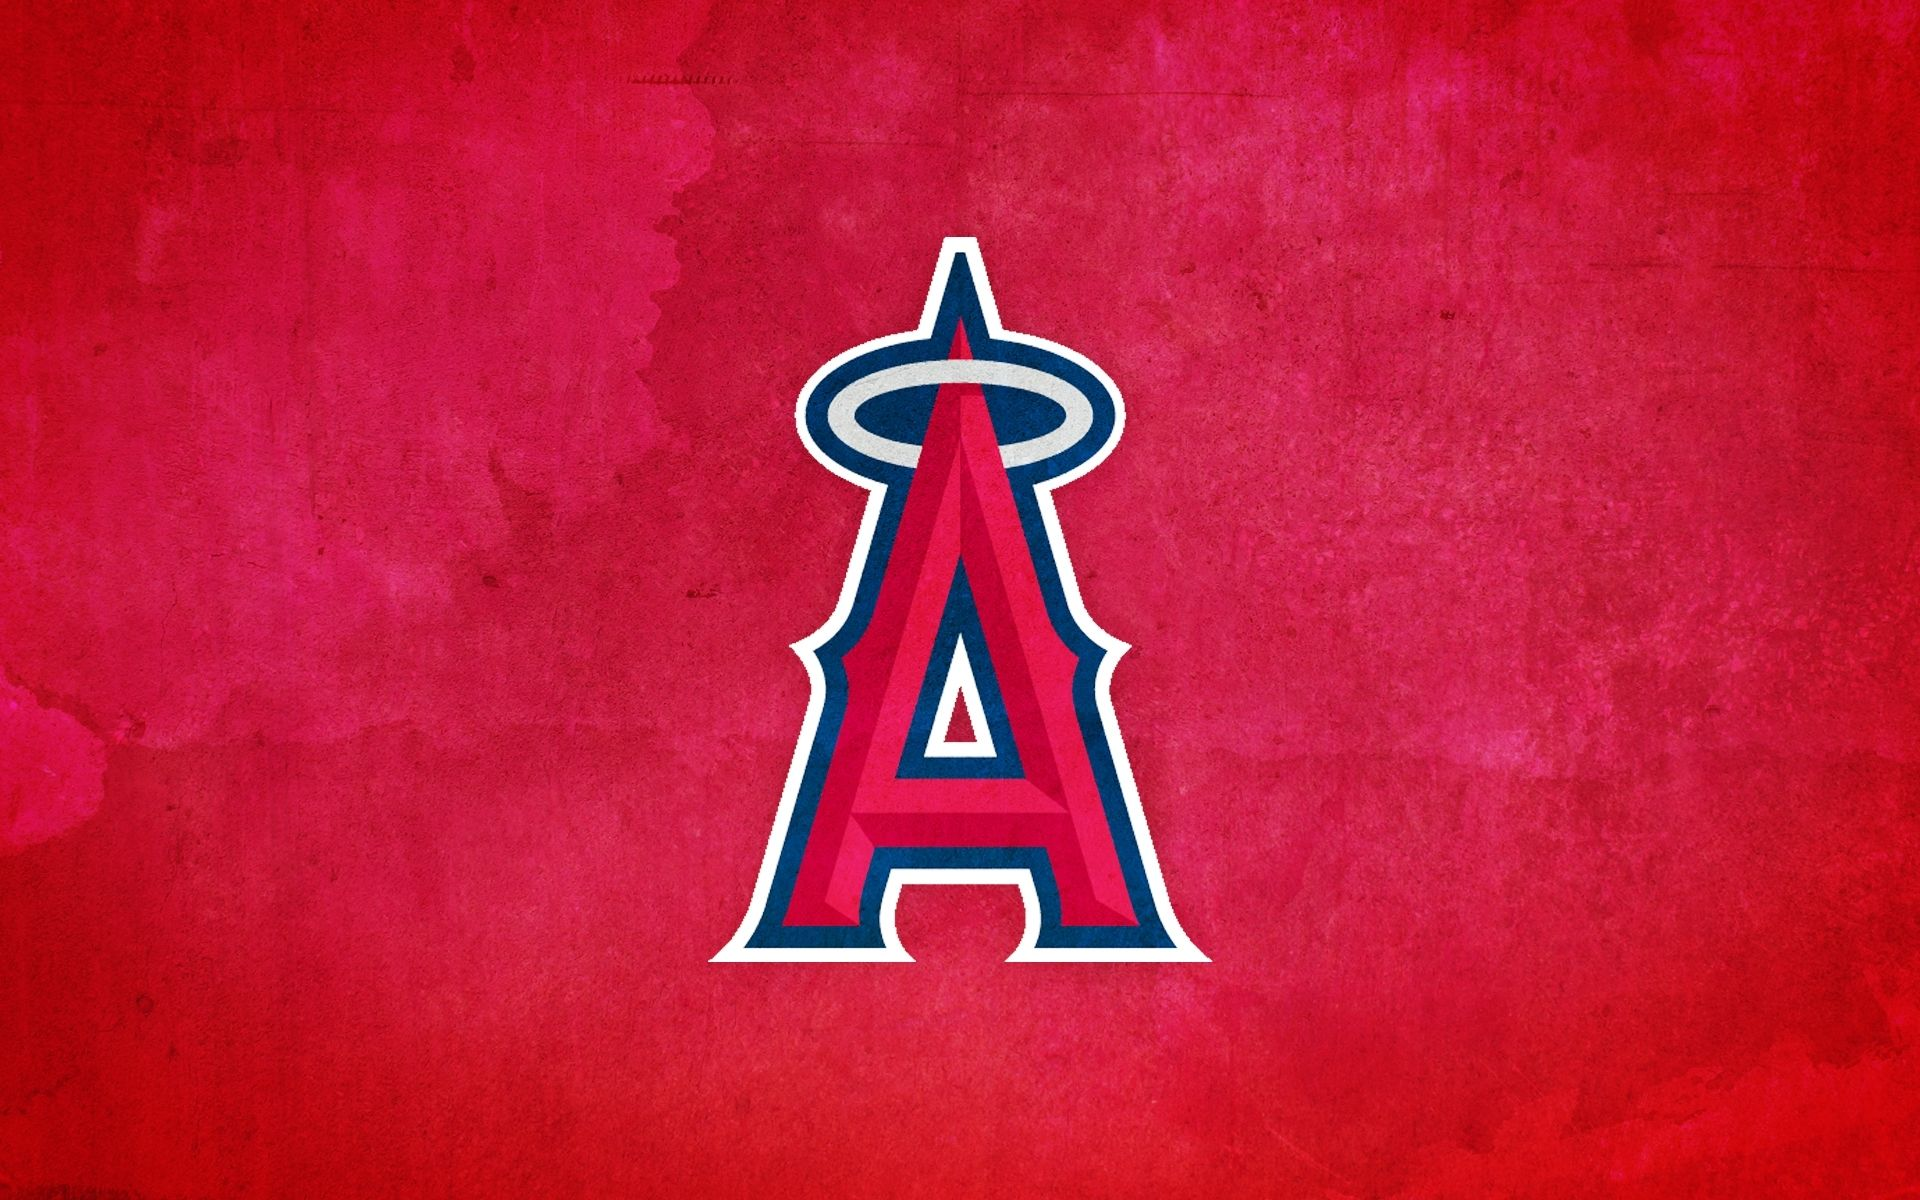 10 Best Los Angeles Angels Wallpaper Full Hd 1920 1080 For Pc Background Angels Baseball Los Angeles Angels Los Angeles Angels Baseball